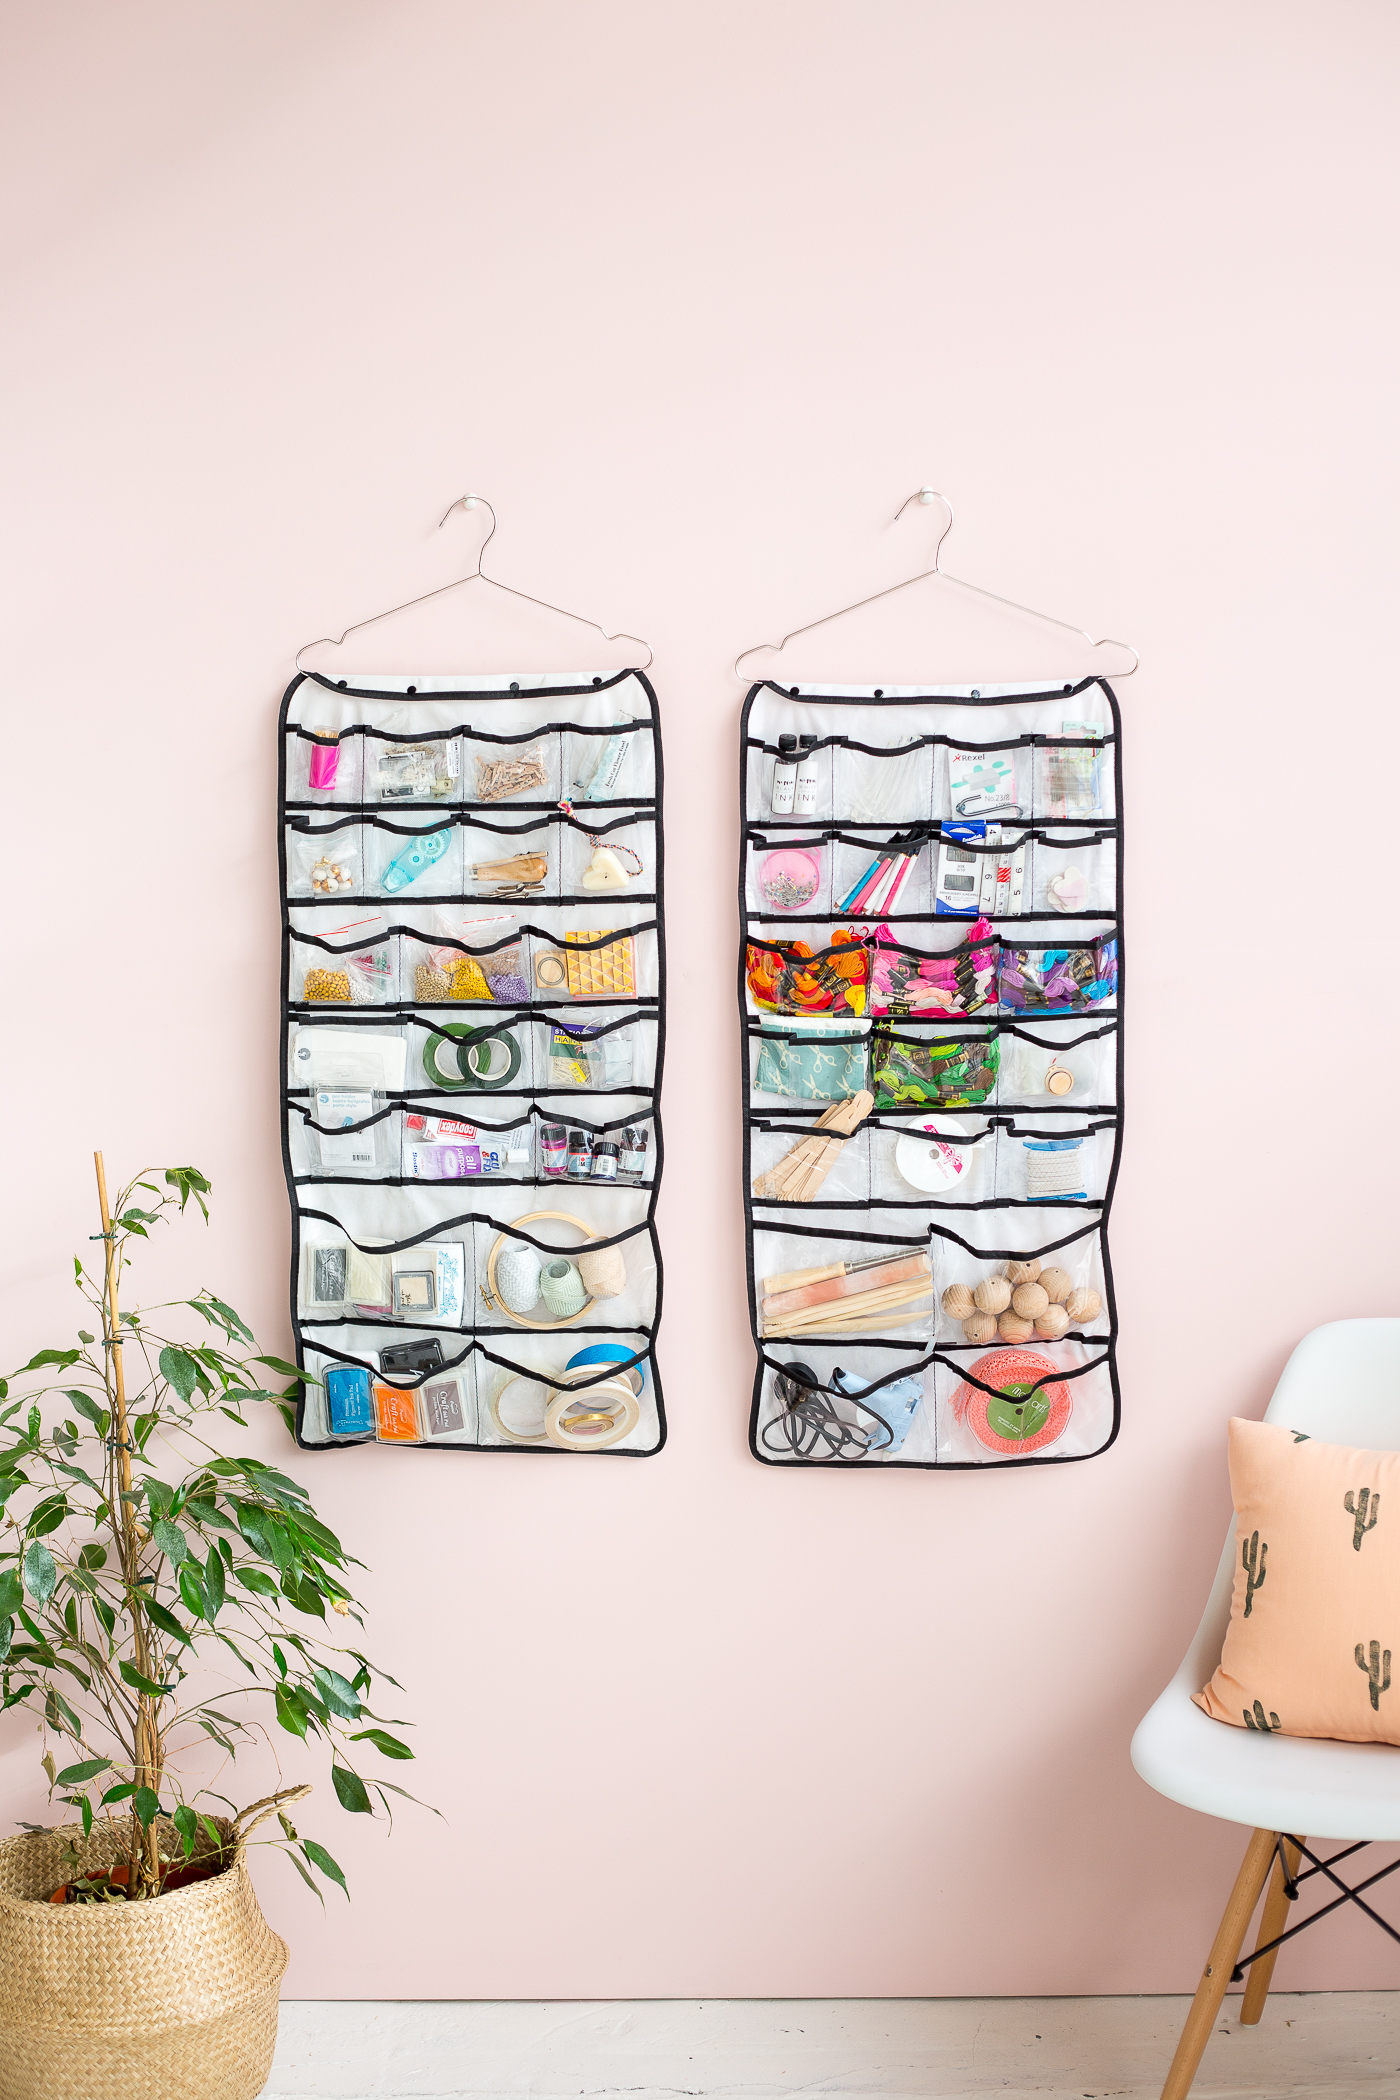 Organising-your-craft-space-how-to-use-hanging-storage-to-stay-tidy-3.jpg